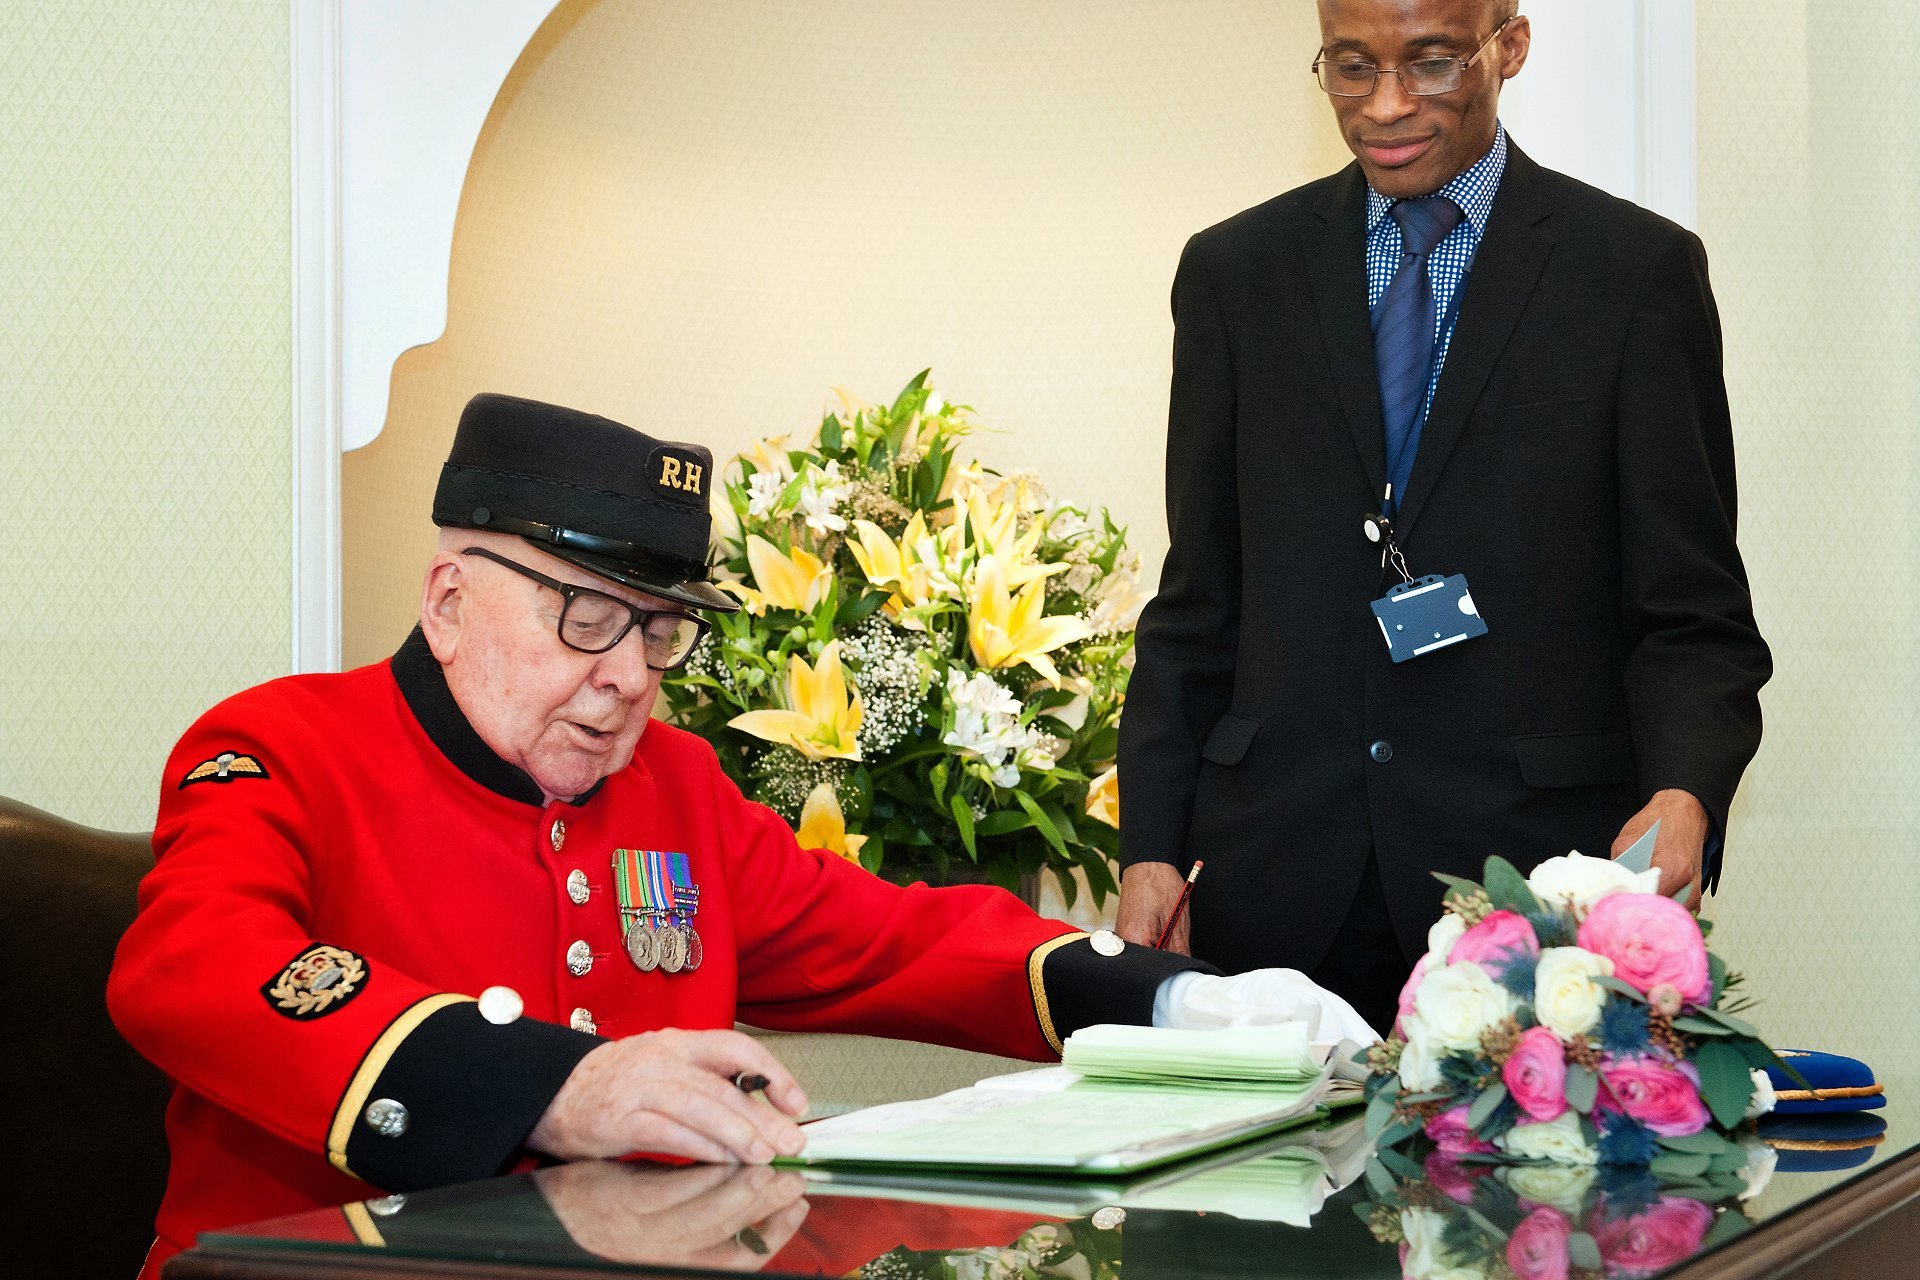 A Chelsea Pensioner acting as a witness to a couple's civil marriage ceremony in the Rossetti Room at Chelsea Old Town Hall